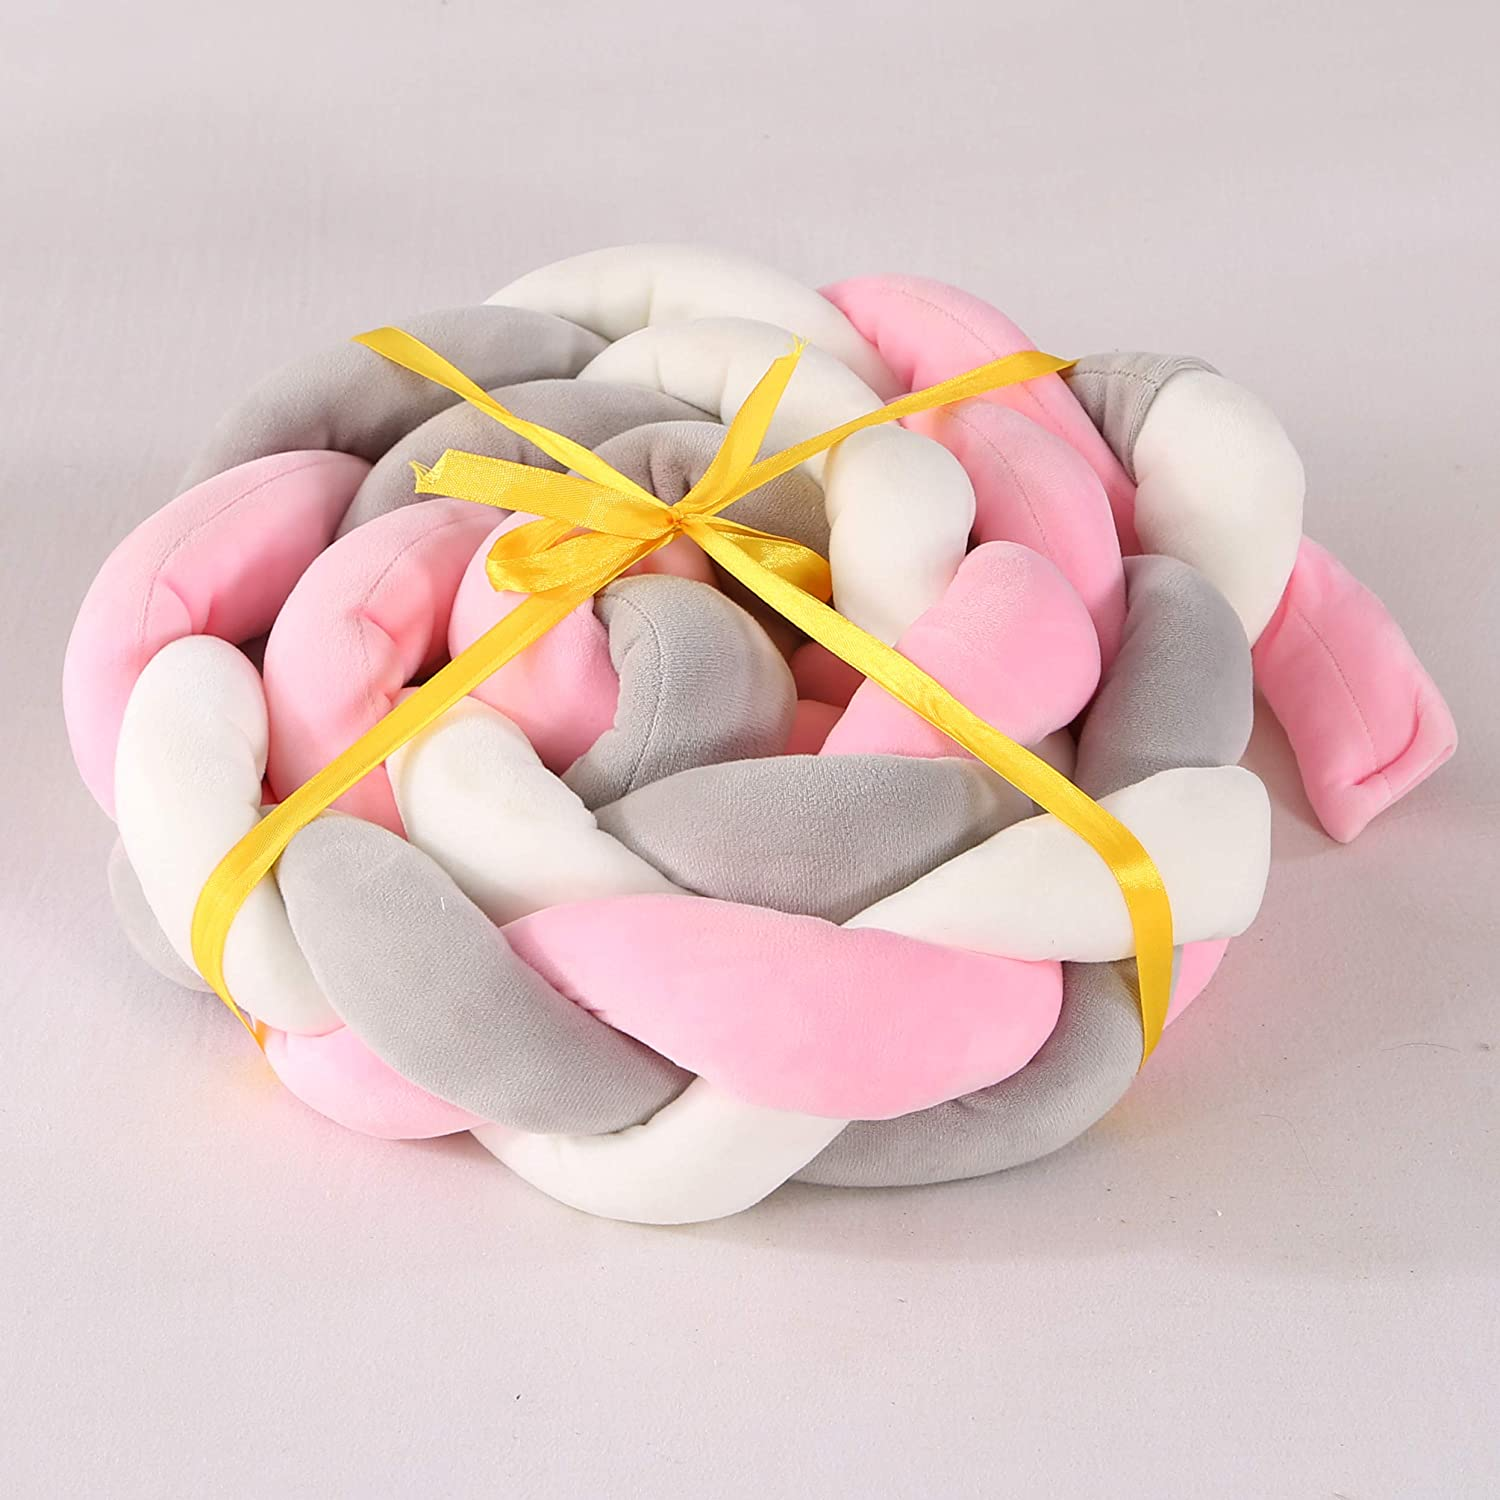 3M Baby Bed Crib Bumpers Knotted Braided Plush Nursery Cradle Decor Cot Bumpers Soft Breathable Crib Side Protector Sleep Pillow Cushion for Newborn 3 Meters, Grey-White-Pink